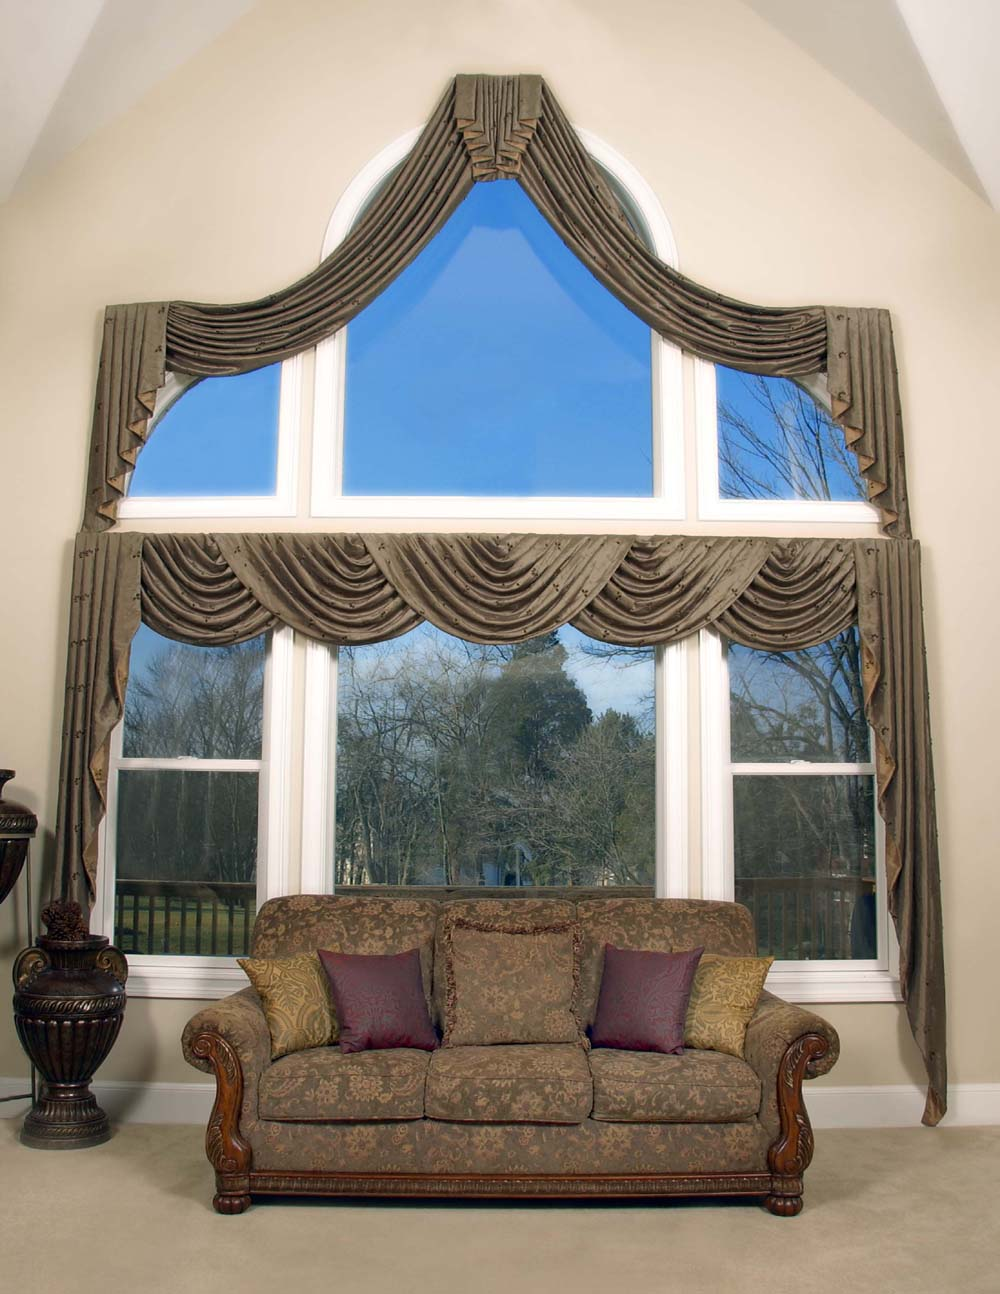 Arched Window Ideas And Designs: New Arched Window Design